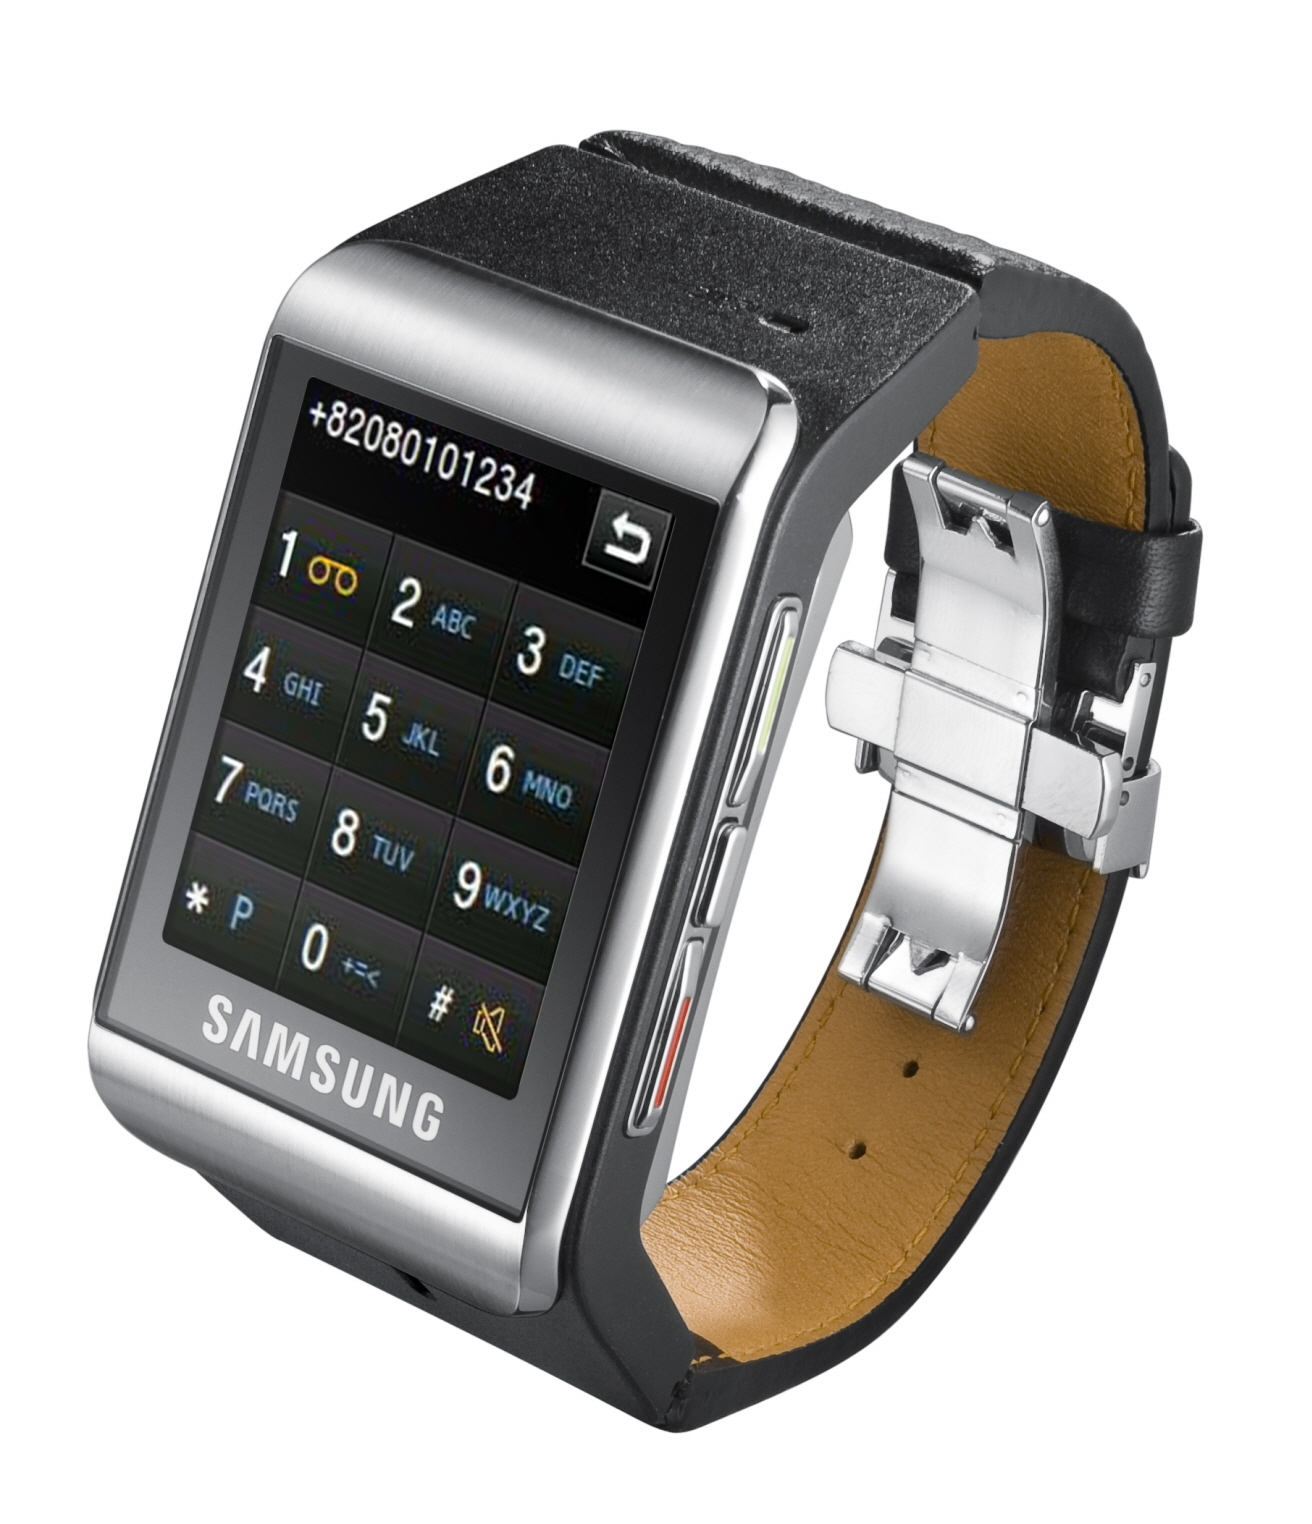 Samsung Smart Watch 2011